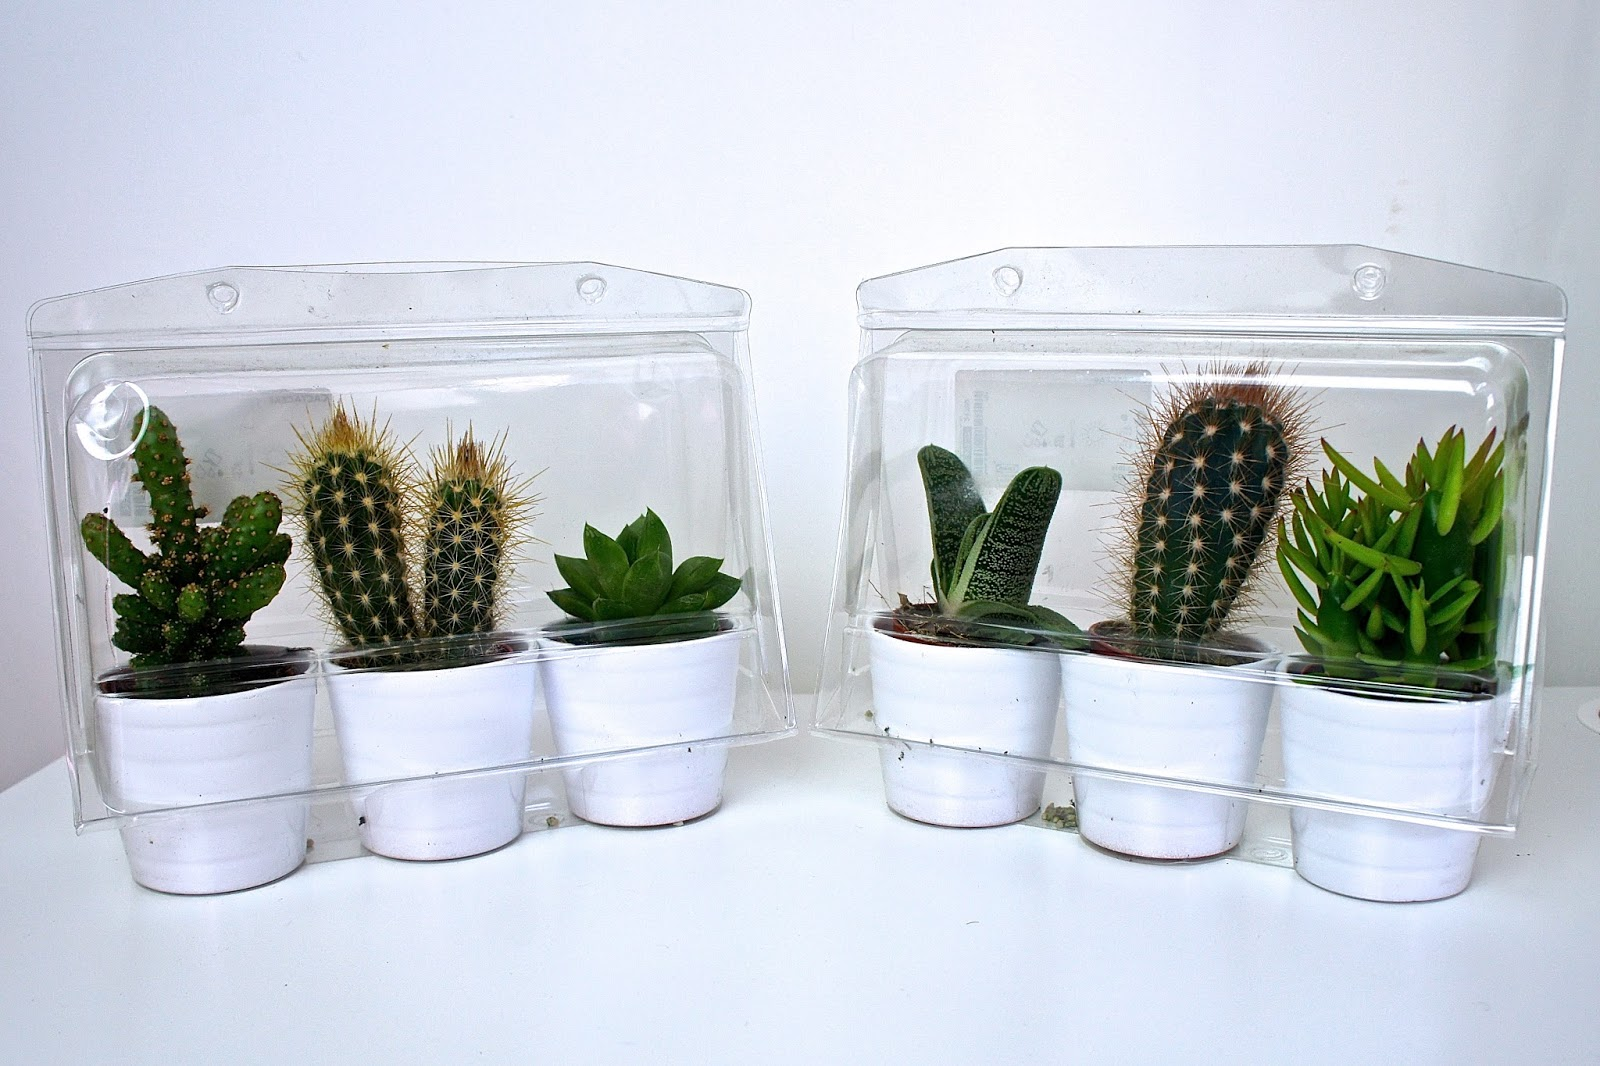 plant, cacti, cactus, lifestyle, homeware, greenery, home